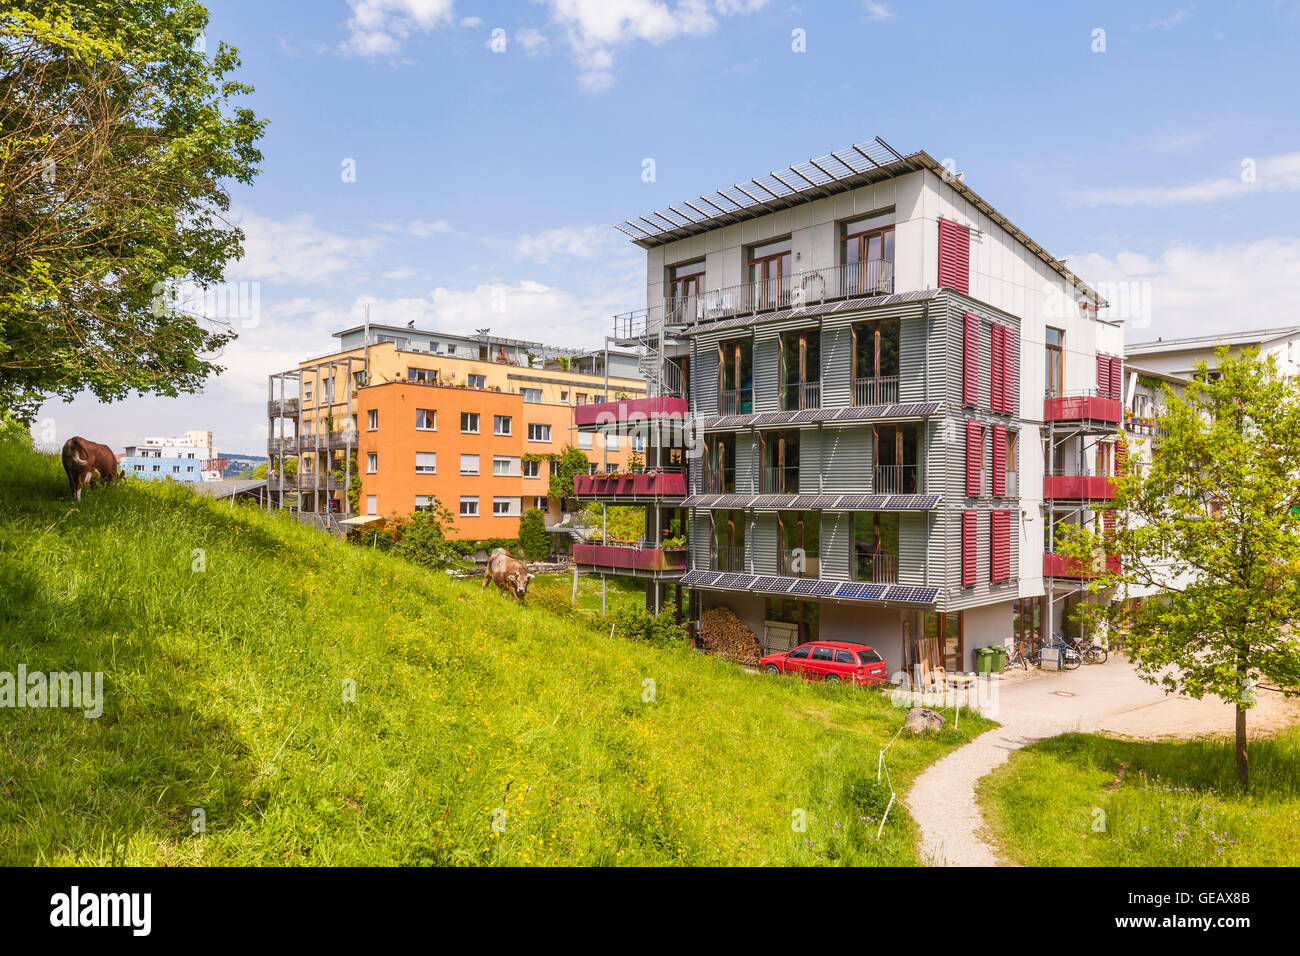 Real Tübingen Ecological Housing Stock Photos And Ecological Housing Stock